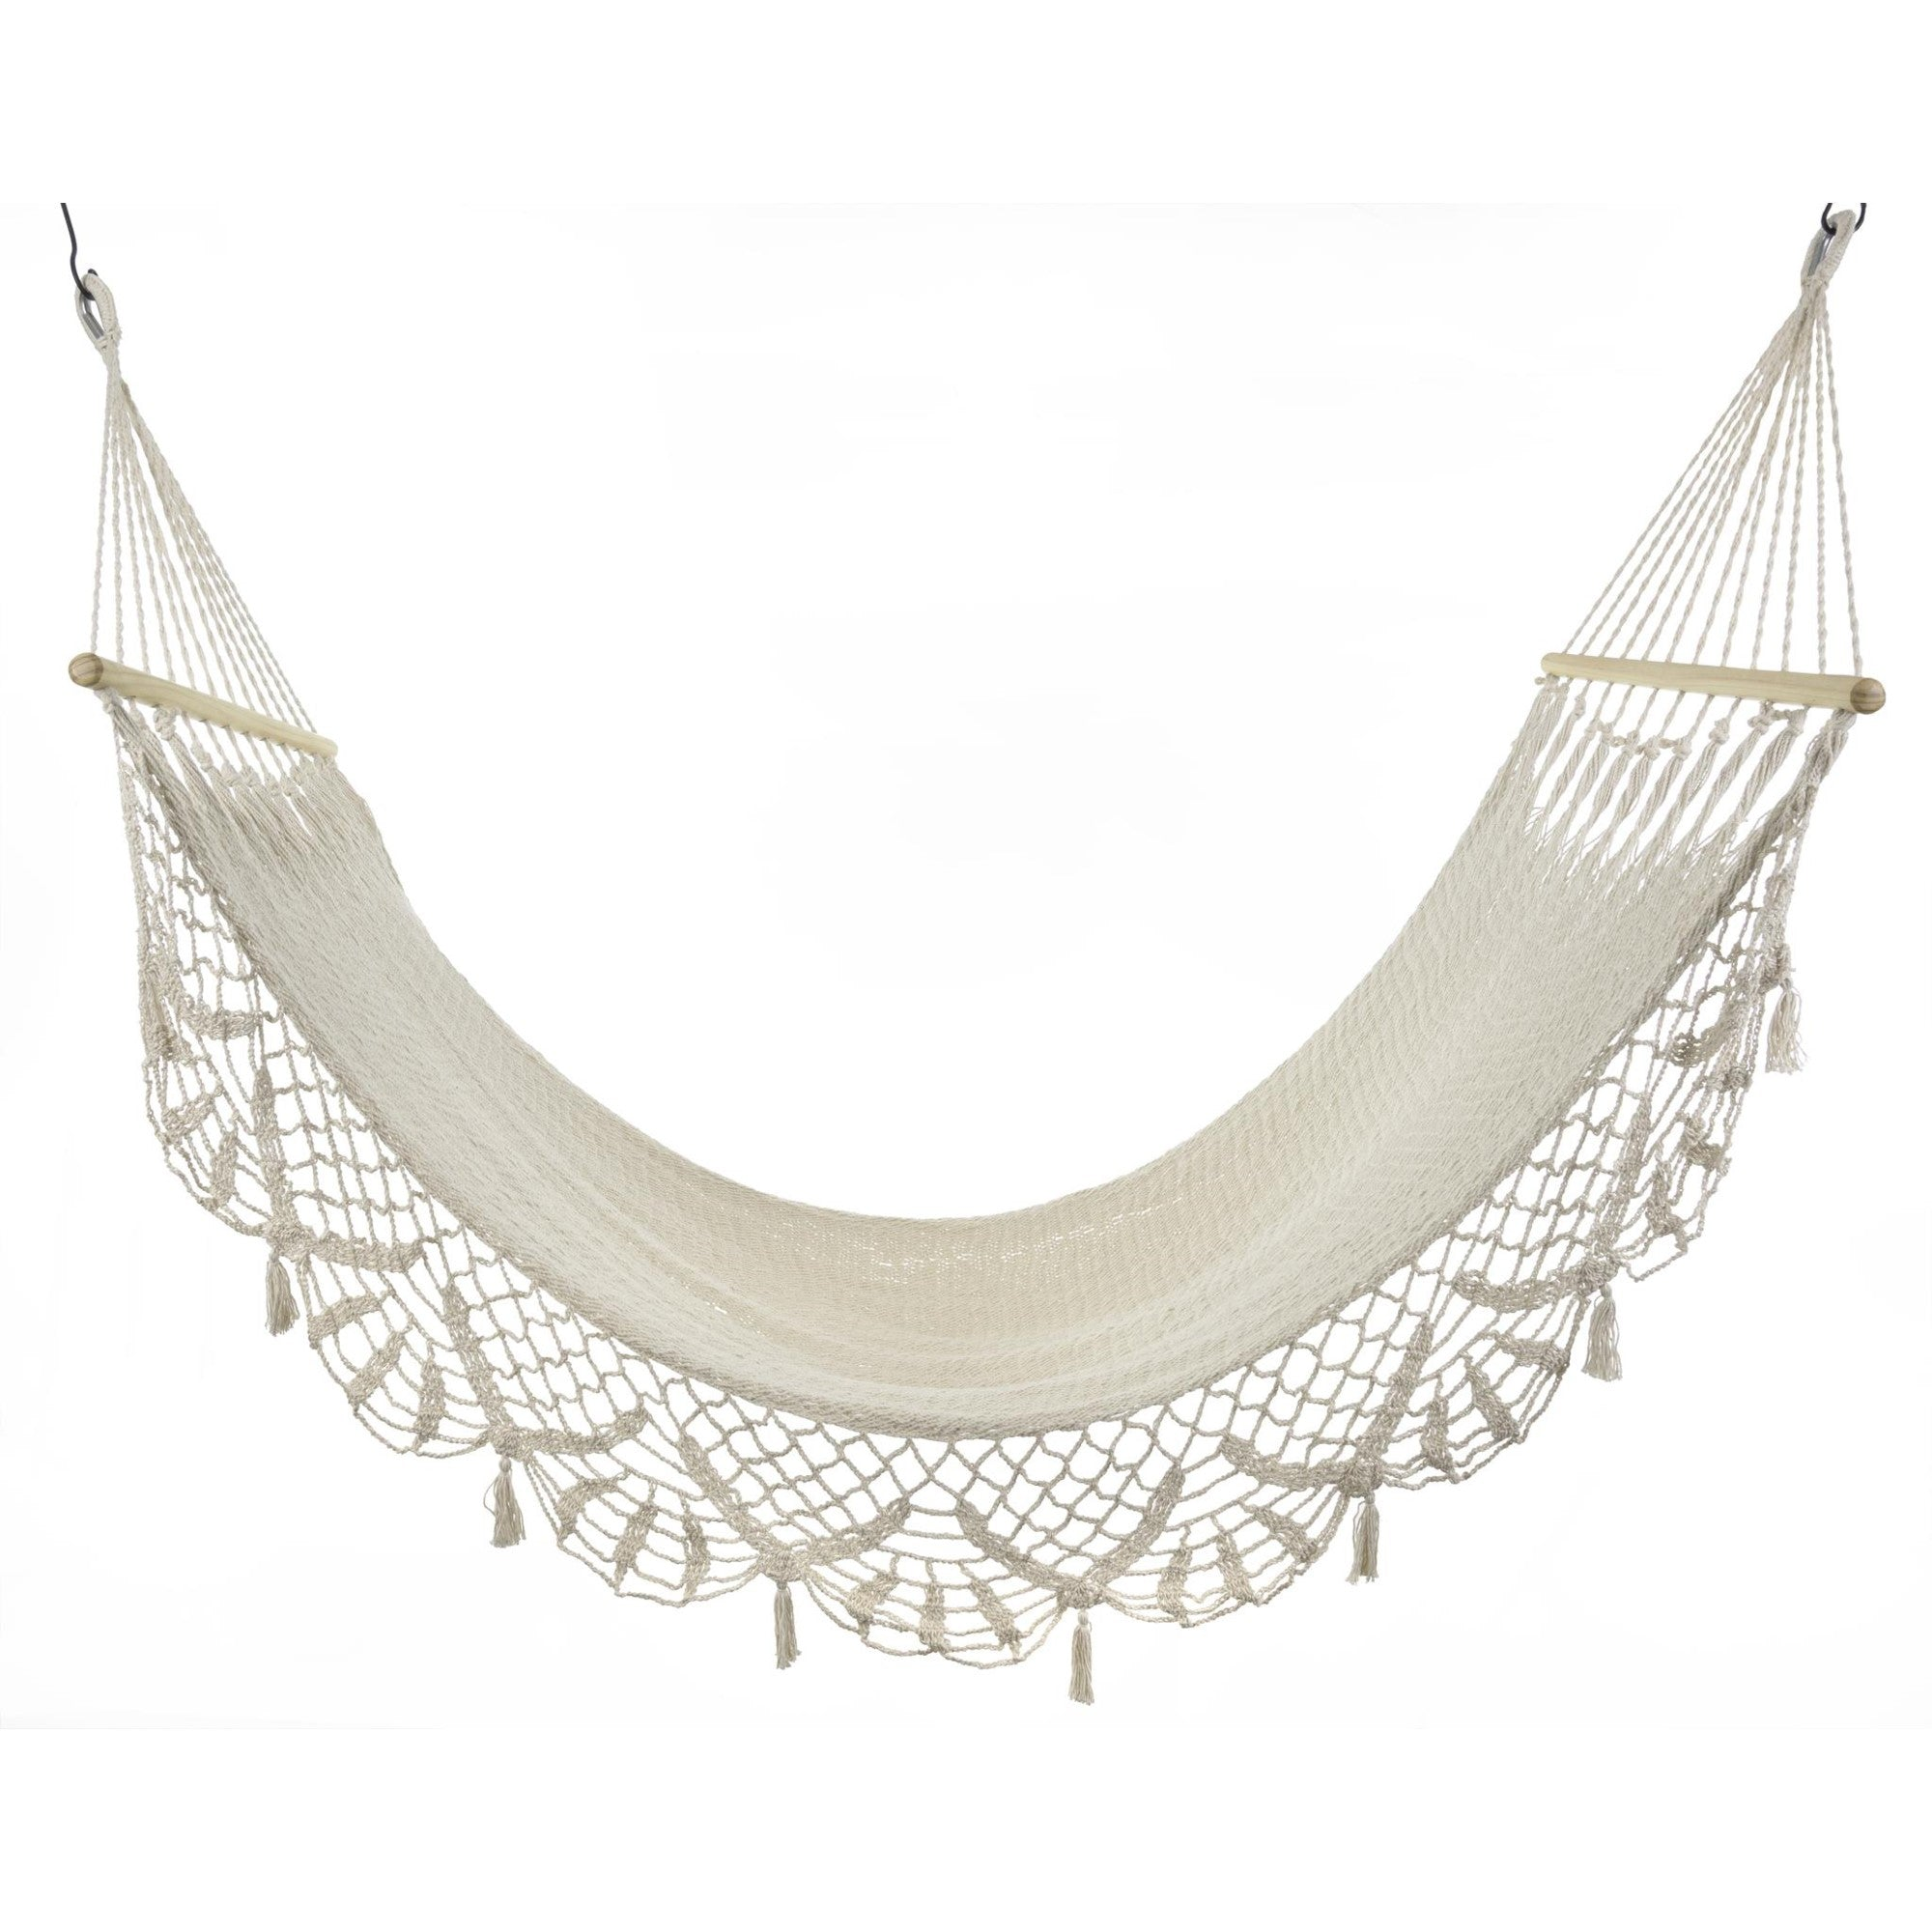 BACK IN STOCK - Woven Cotton Hammock